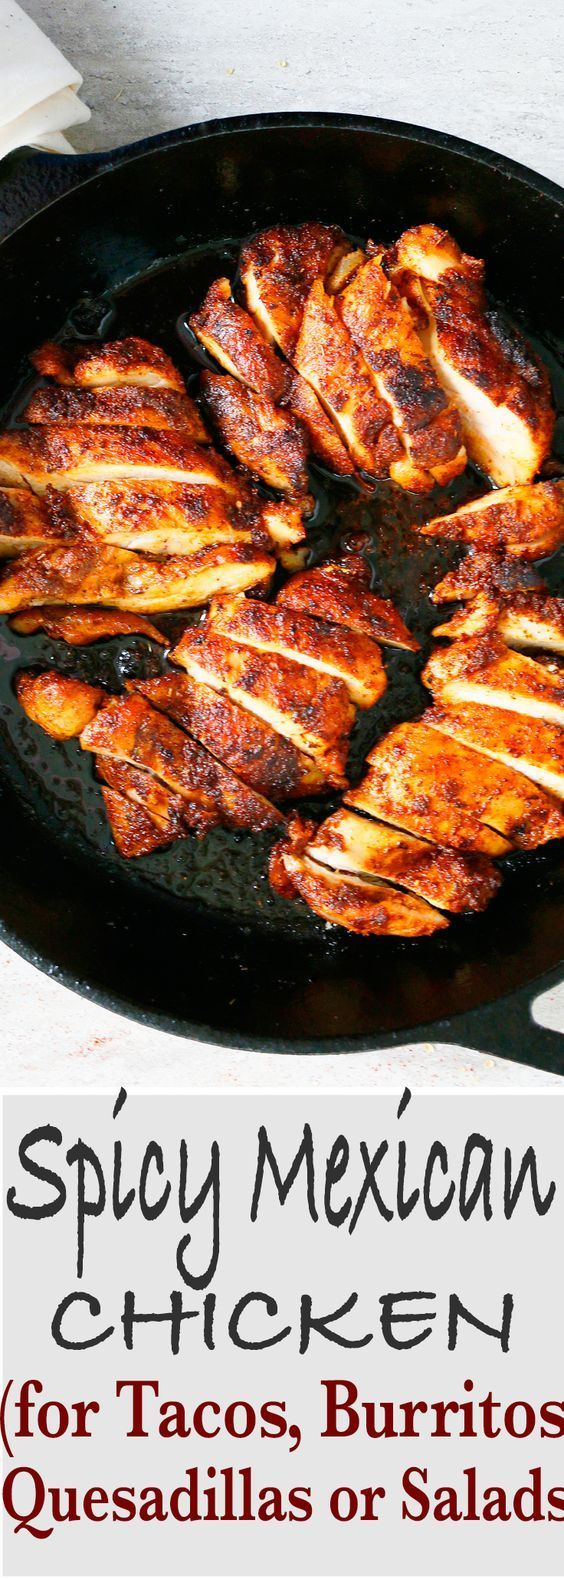 Baked Mexican Chicken Mexican Chicken For Tacos Mexicanchicken Recipesfordinner Spicychickenr Chicken Recipes Spicy Chicken Recipes Easy Cooking Recipes